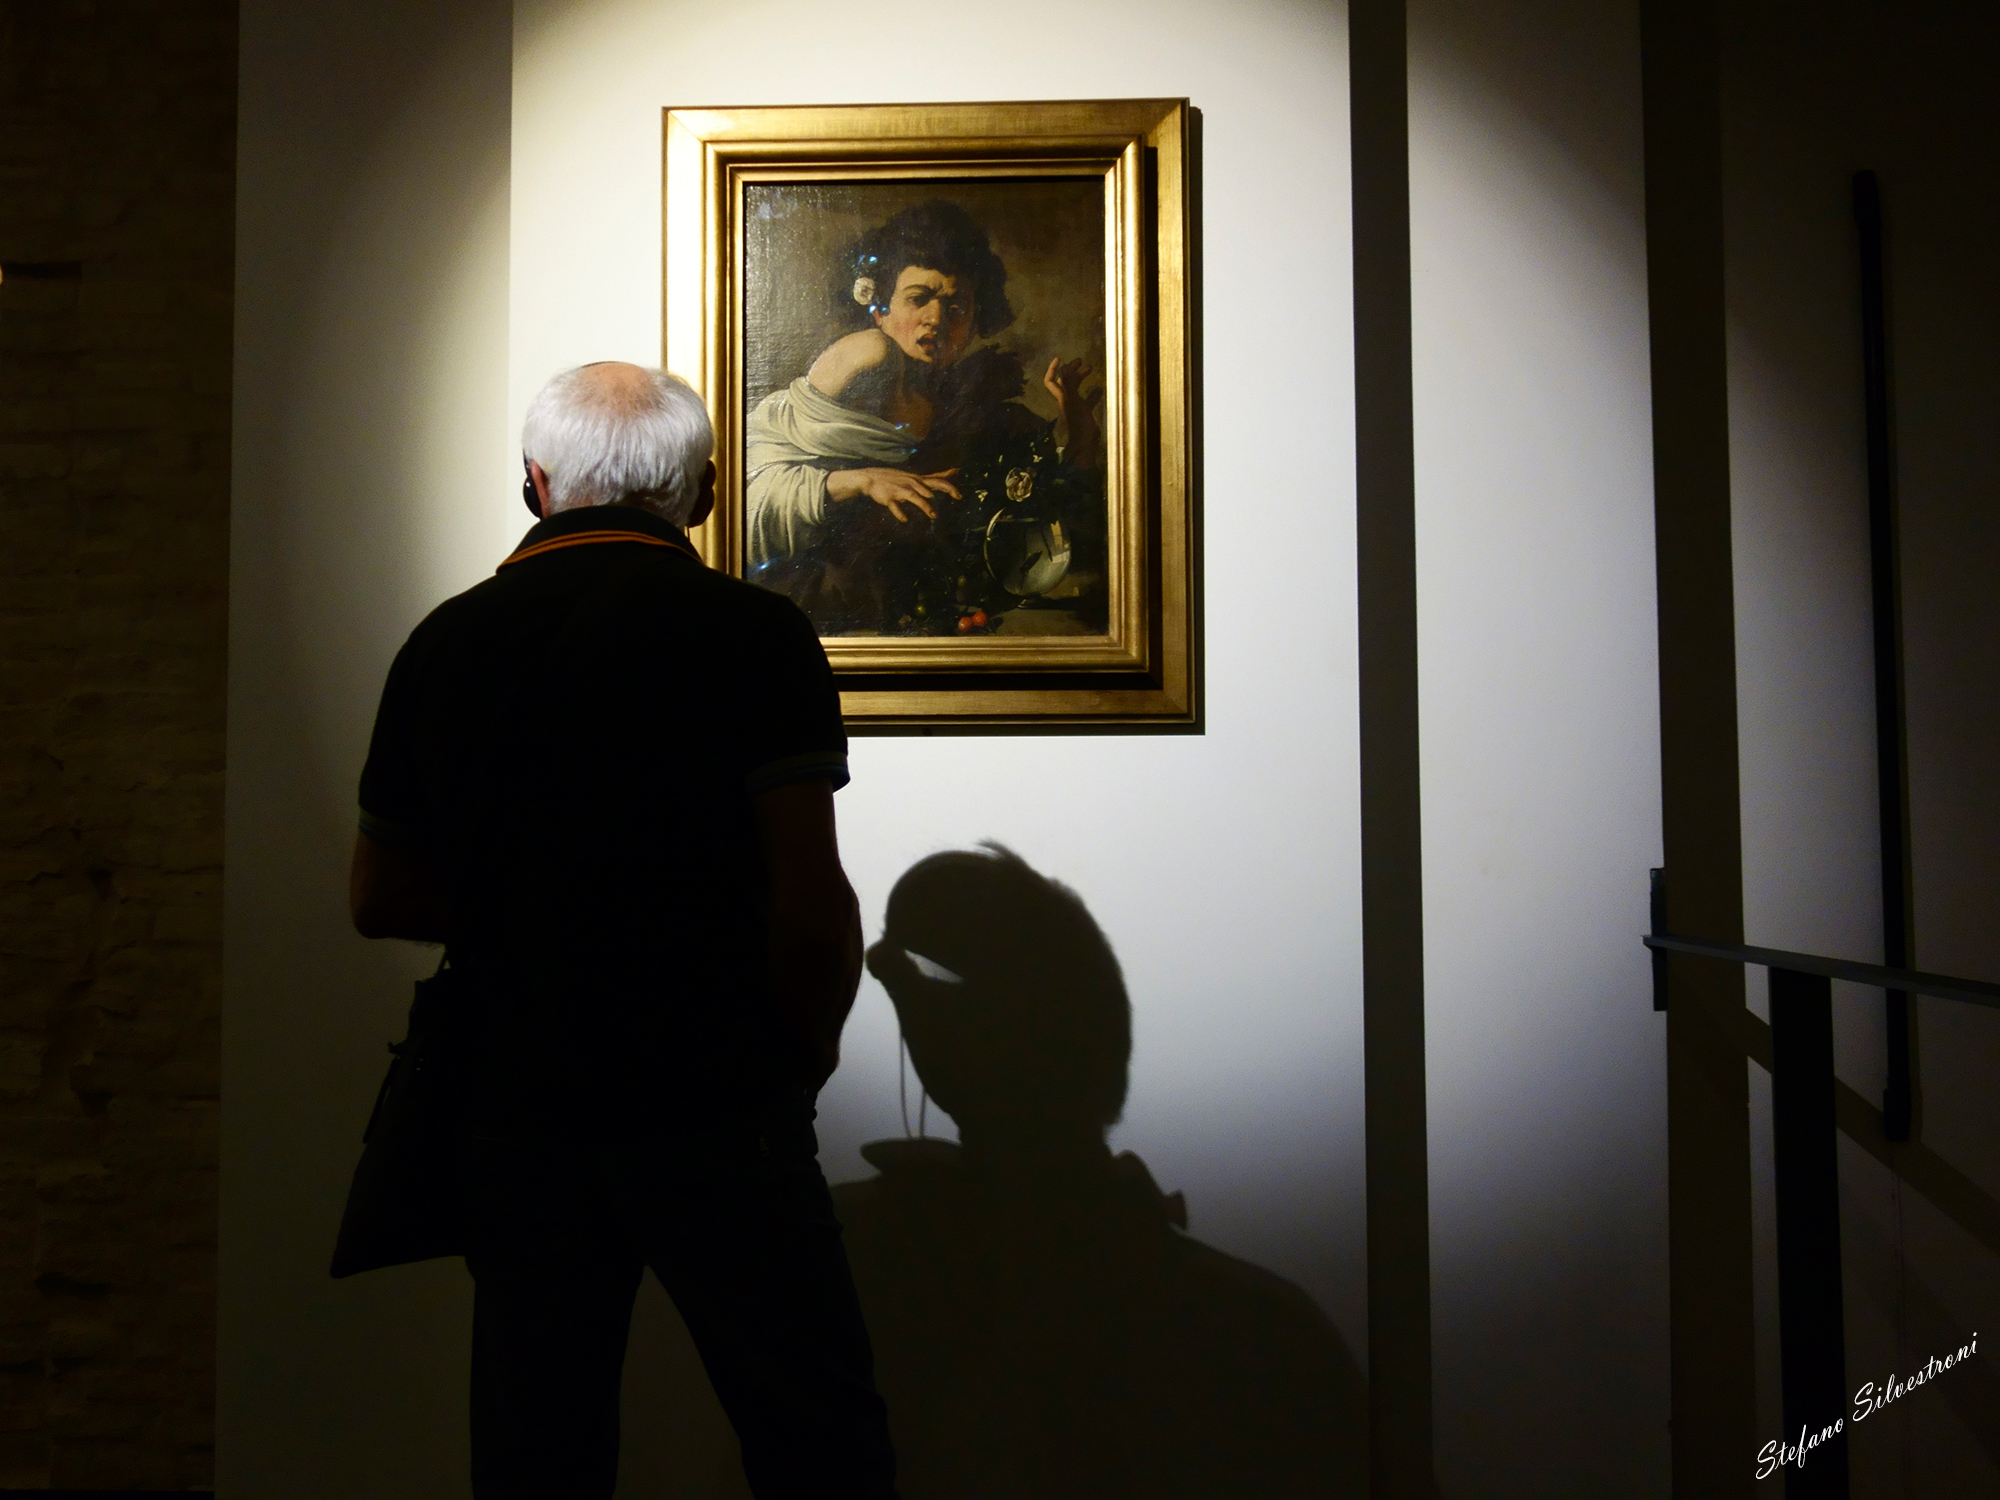 Lights and shadows in the work of art......